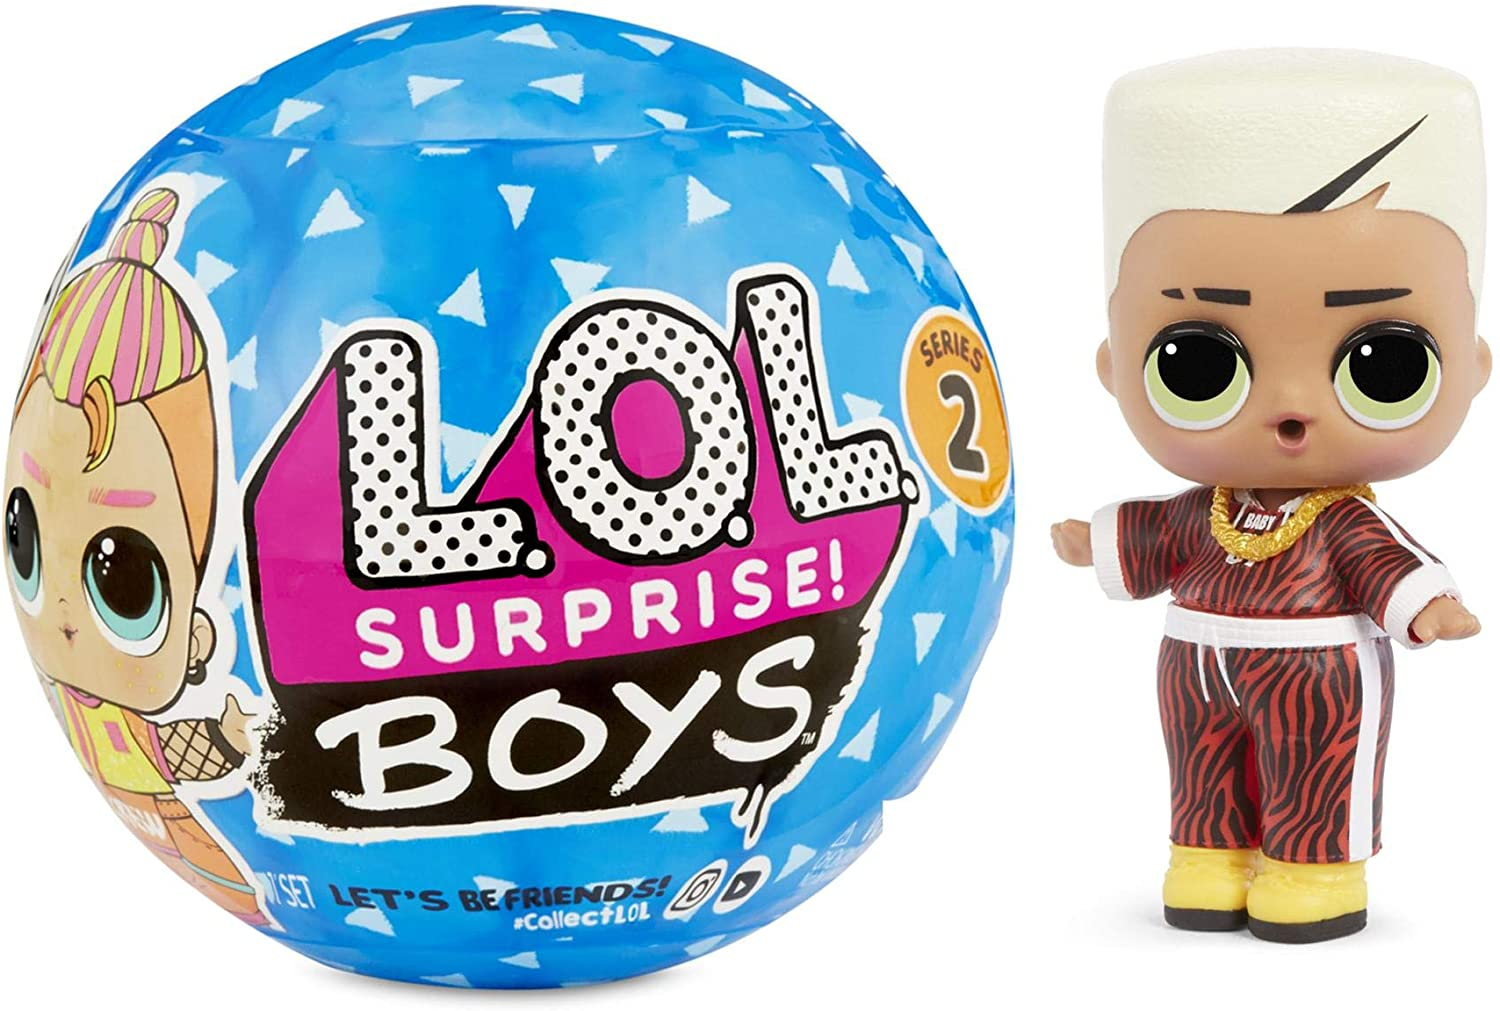 L.O.L. Surprise! 564799E7C Boys Series 2 Doll with 7 Surprises, Multi